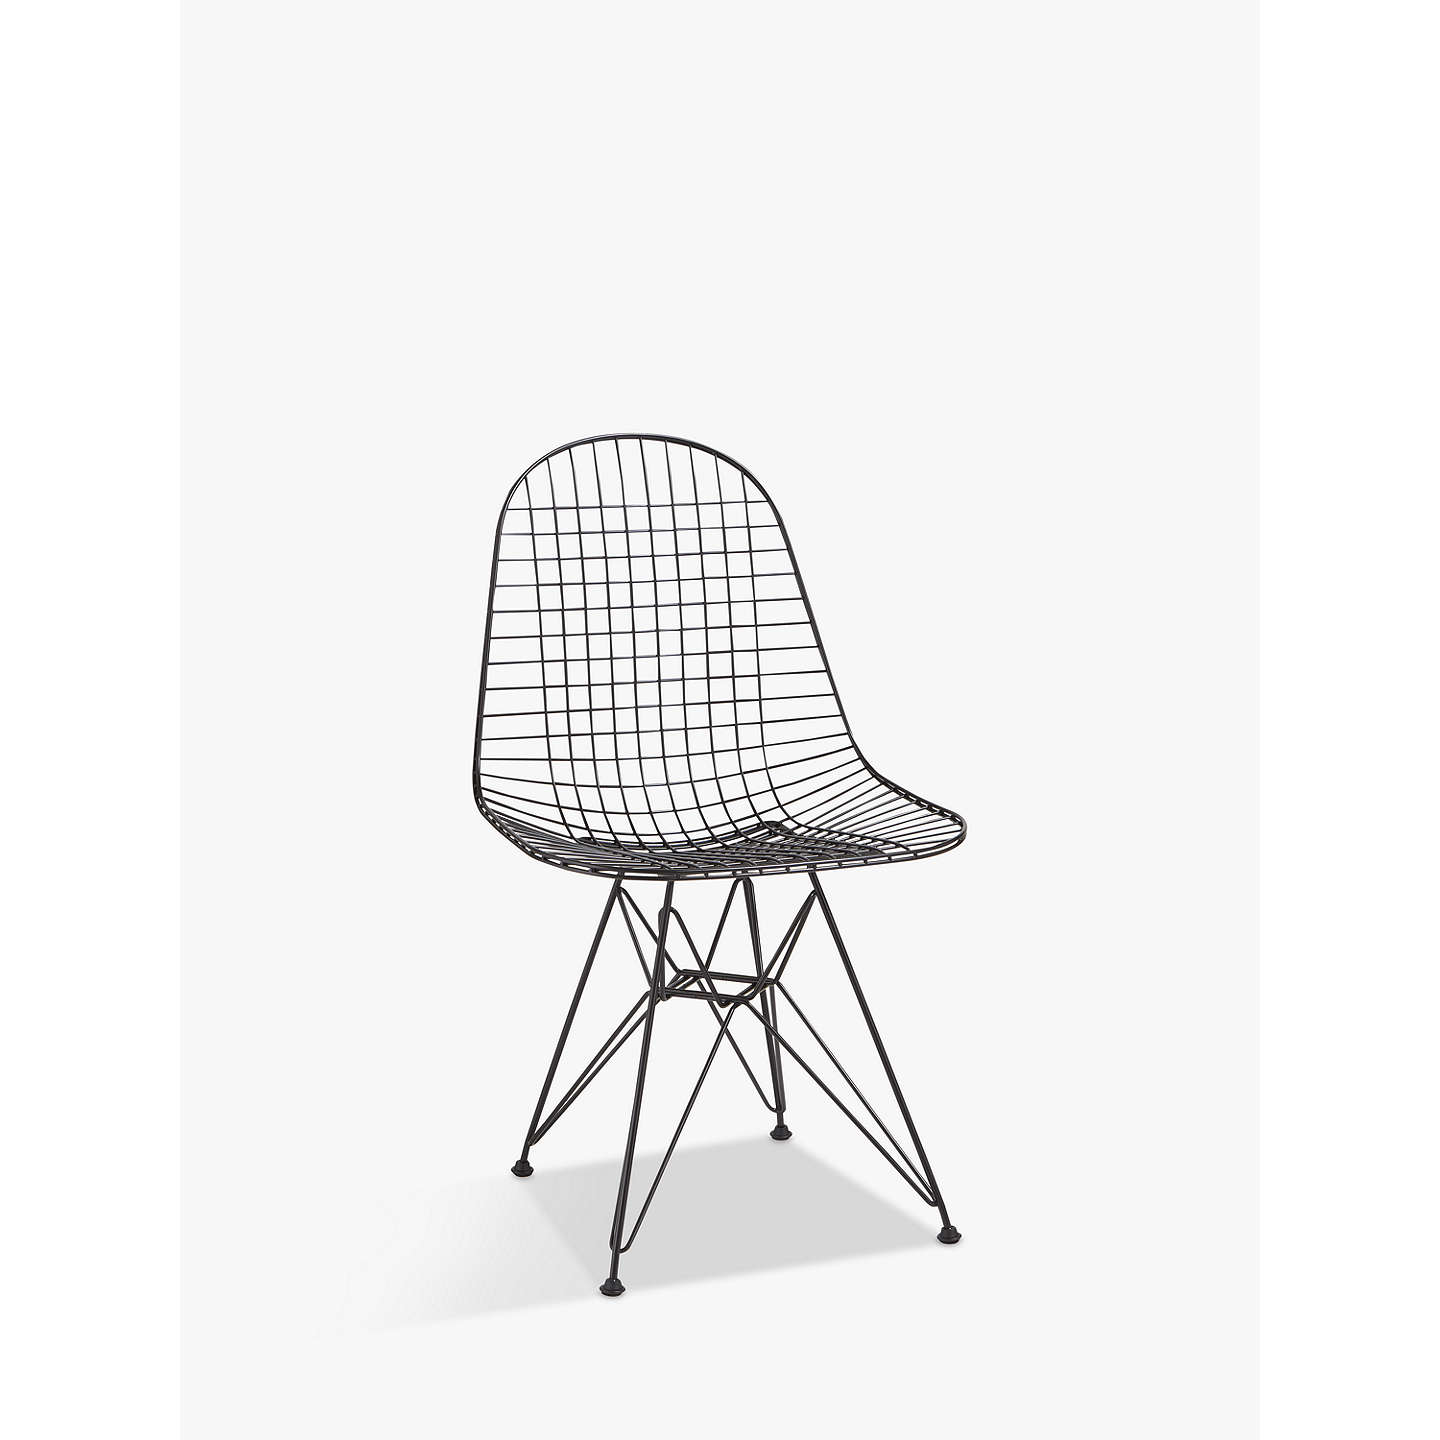 Vitra Eames DKR Wire Chair at John Lewis